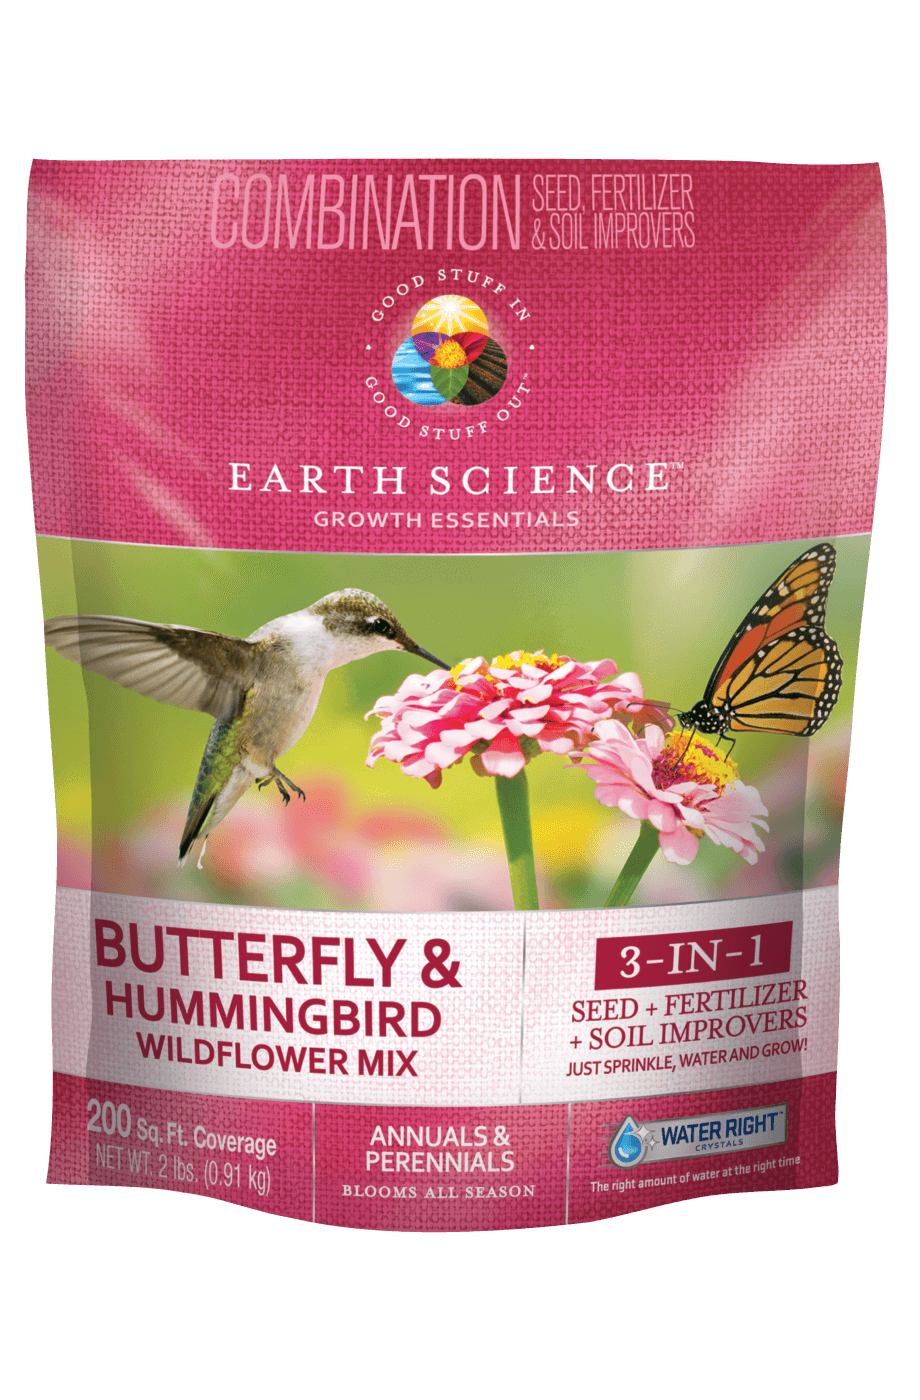 Earth Science Wildflower Butterfly and Hummingbird Mix